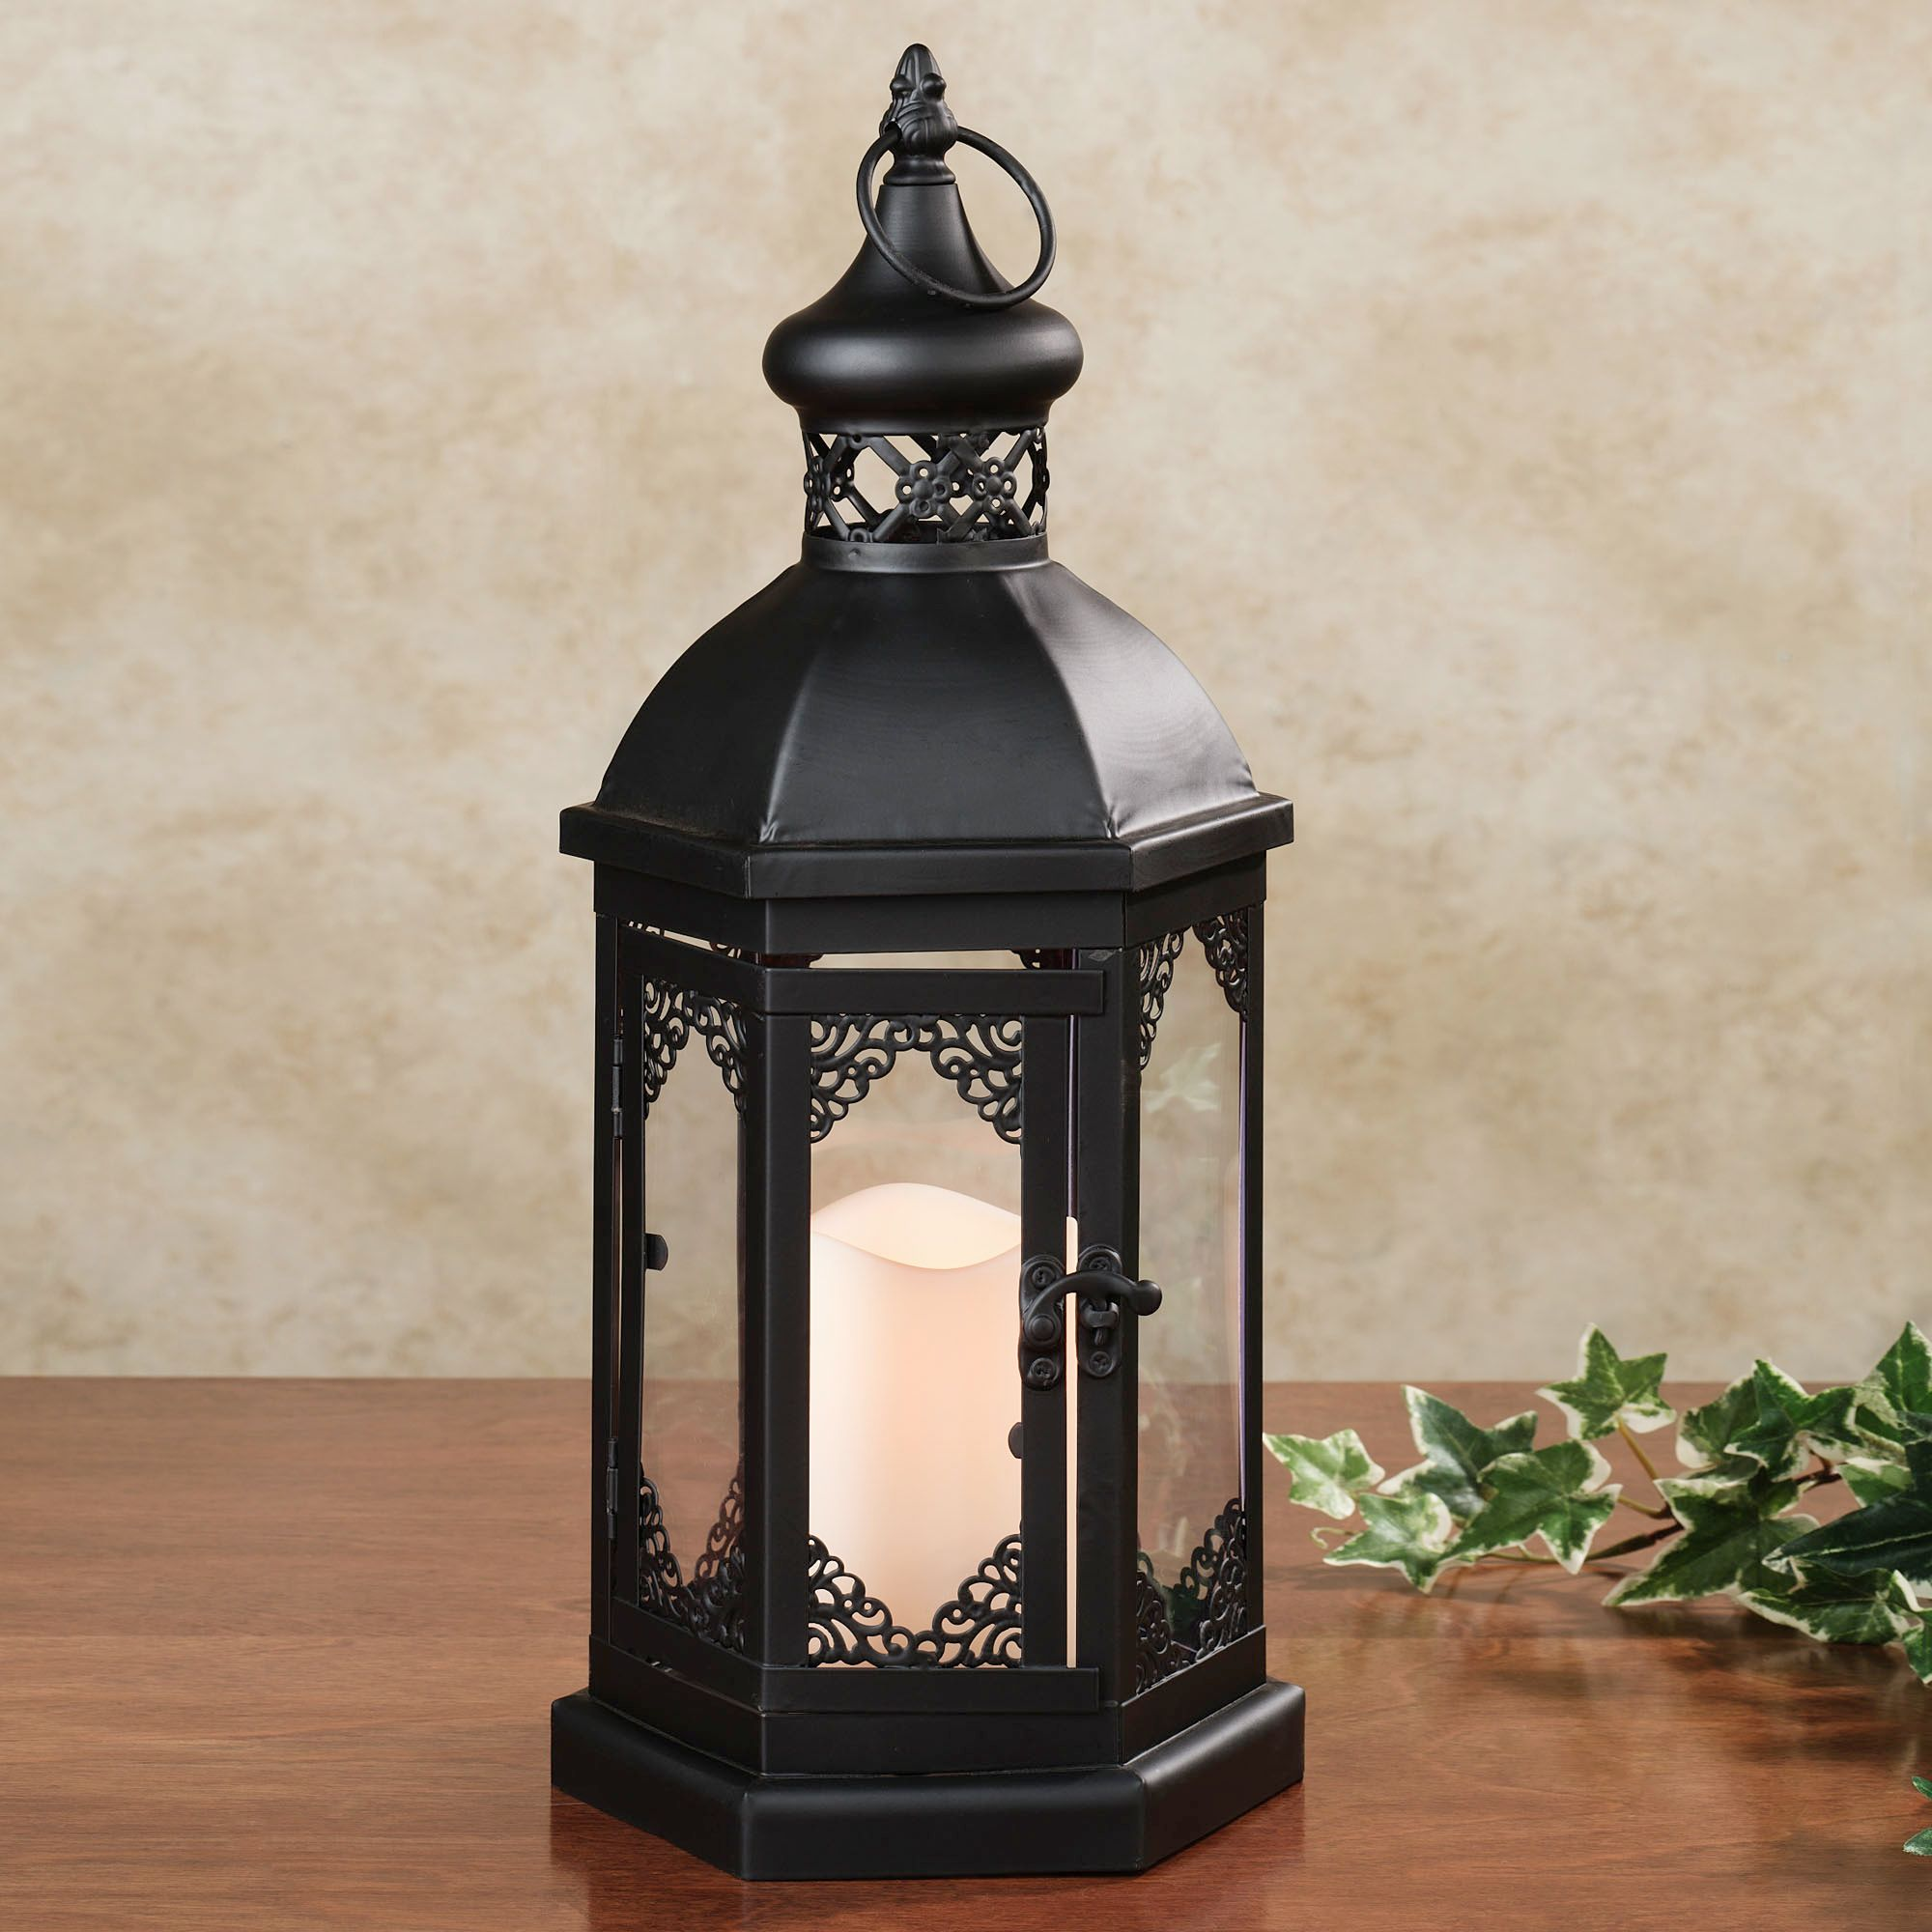 Awesome candle lanterns for outdoor lighting ideas with outdoor candle lanterns and hanging candle lanterns